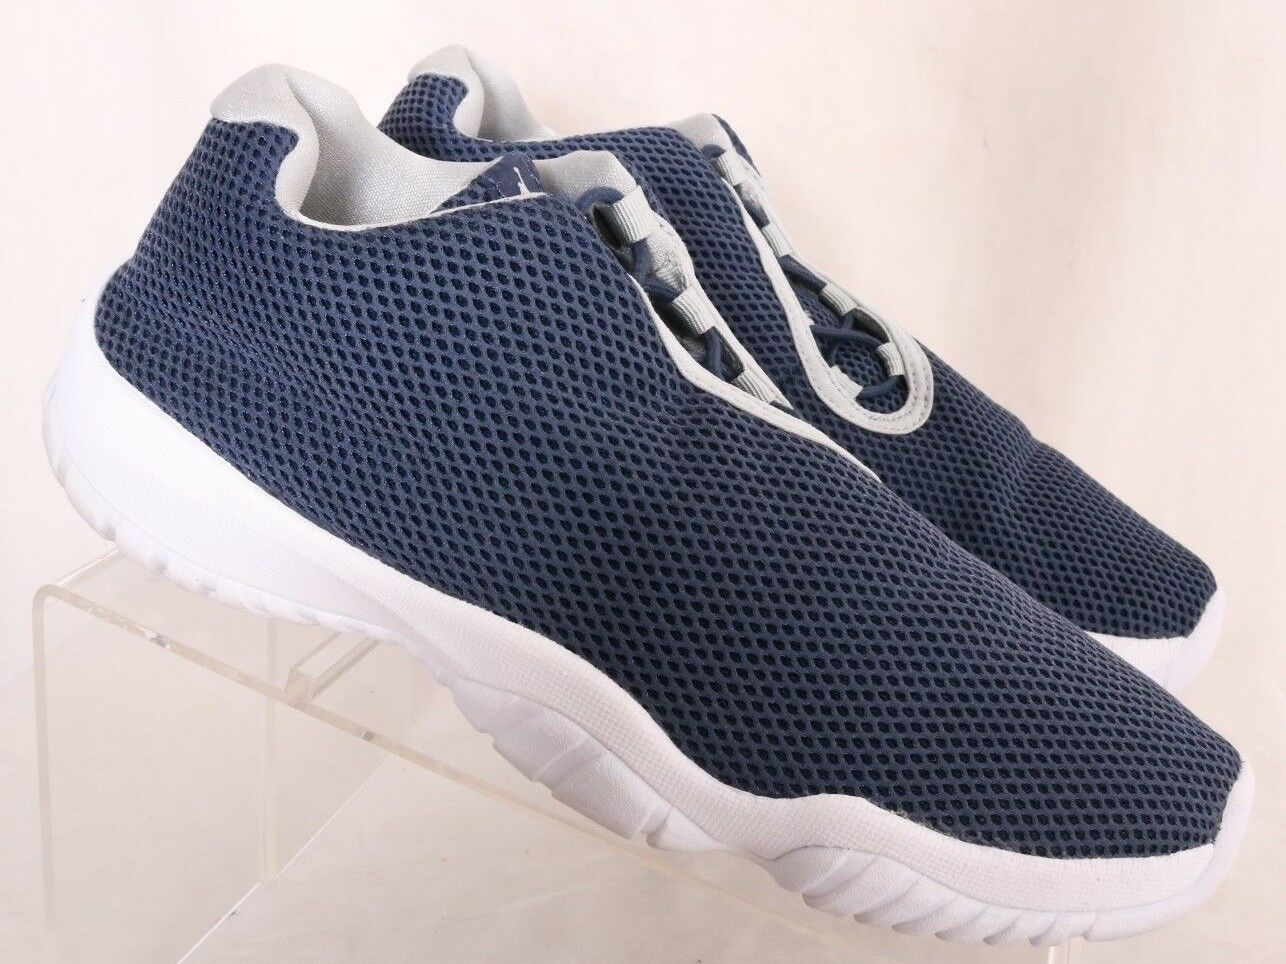 f377300f1b7 ... promo code nike 718948 401 air jordan future mens low training  basketball sneakers mens future us